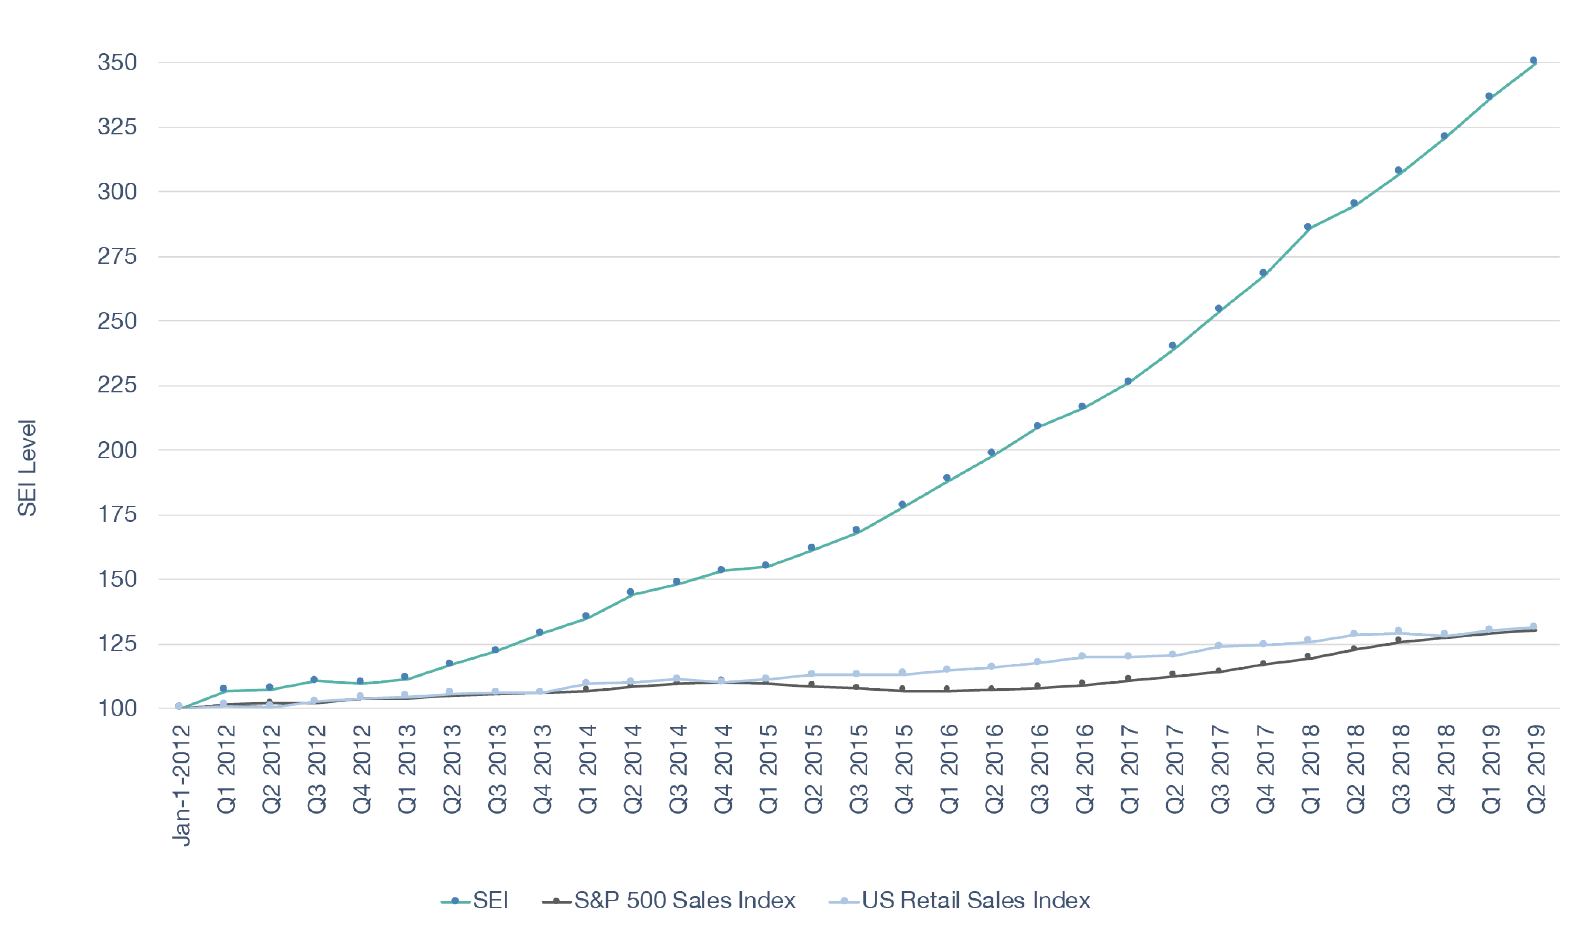 The Subscription Economy Index Level Versus S&P 500 and Retail Sales Growth. Subscription business sales have grown substantially faster than two key public benchmarks—S&P 500 Sales and U.S. retail sales. Overall, the SEI data reveals that subscription businesses grew revenues about five times faster than S&P 500 company revenues (18.2% versus 3.6%) and U.S. retail sales (18.2% versus 3.7%) from January 1, 2012 to June 30, 2019. Source: Subscription Economy Index, Zuora, 2019